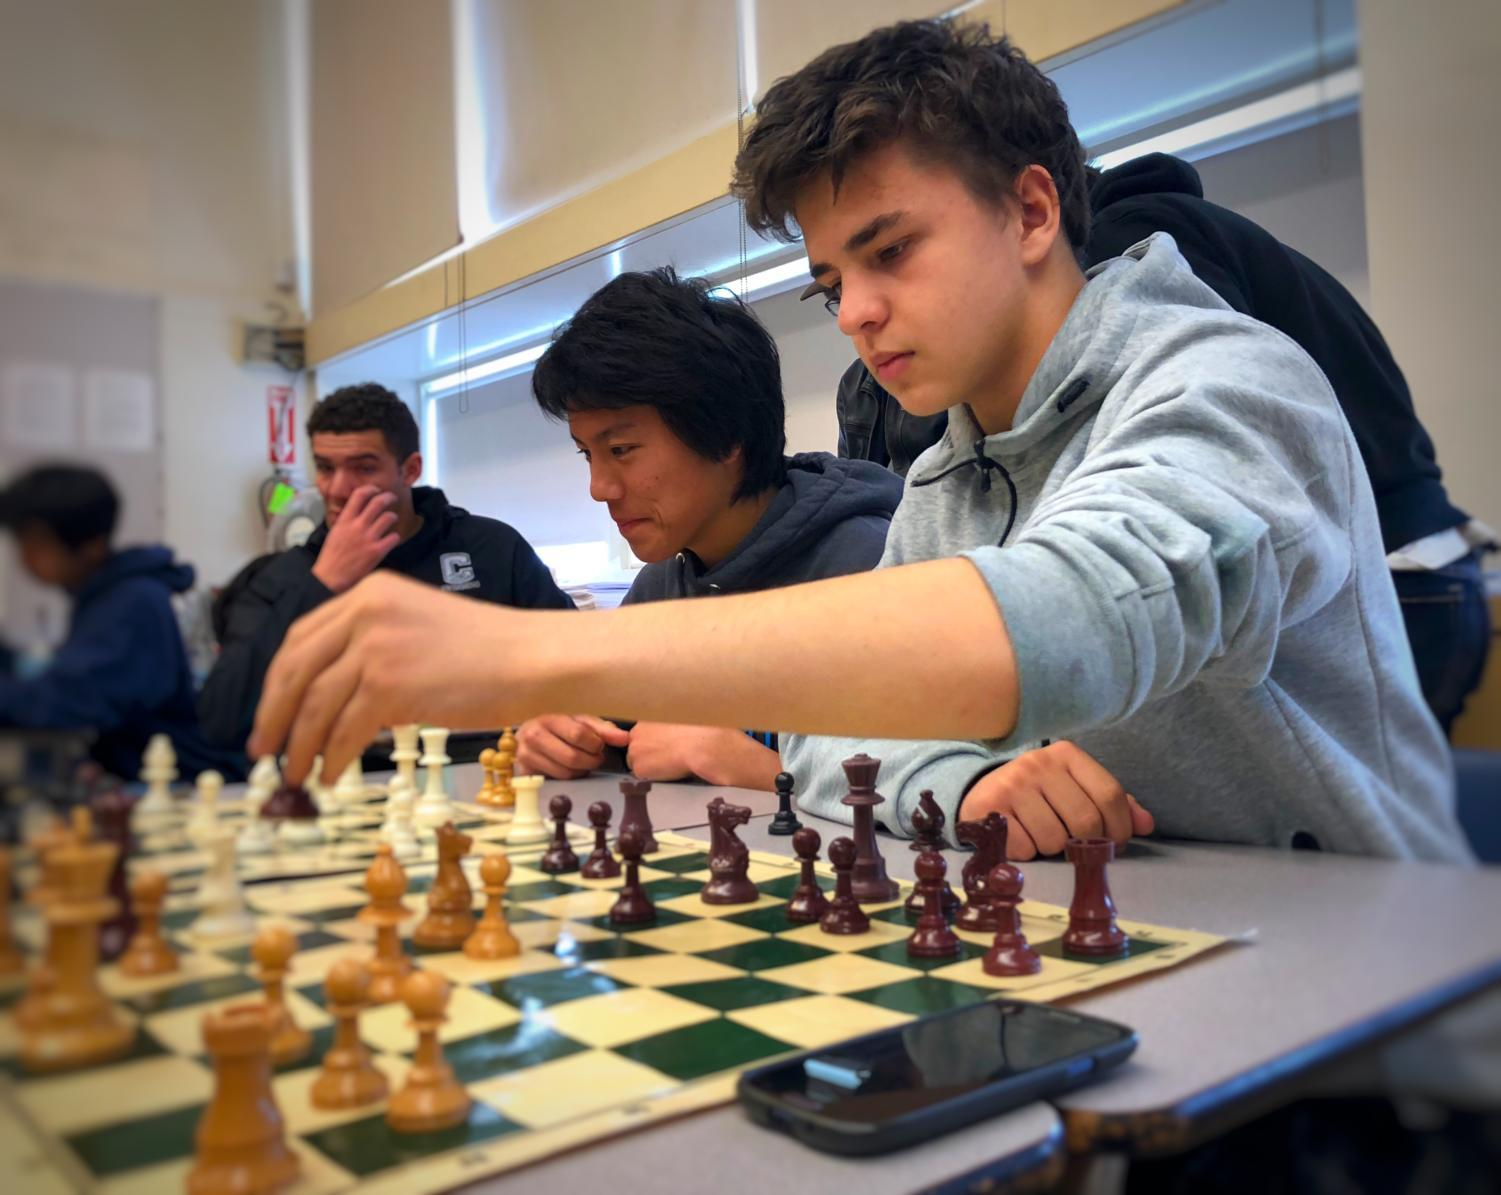 Junior Andrey Shapiro plays in a chess match with his peer during one of Chess Club's regular Friday lunch meetings in D10.